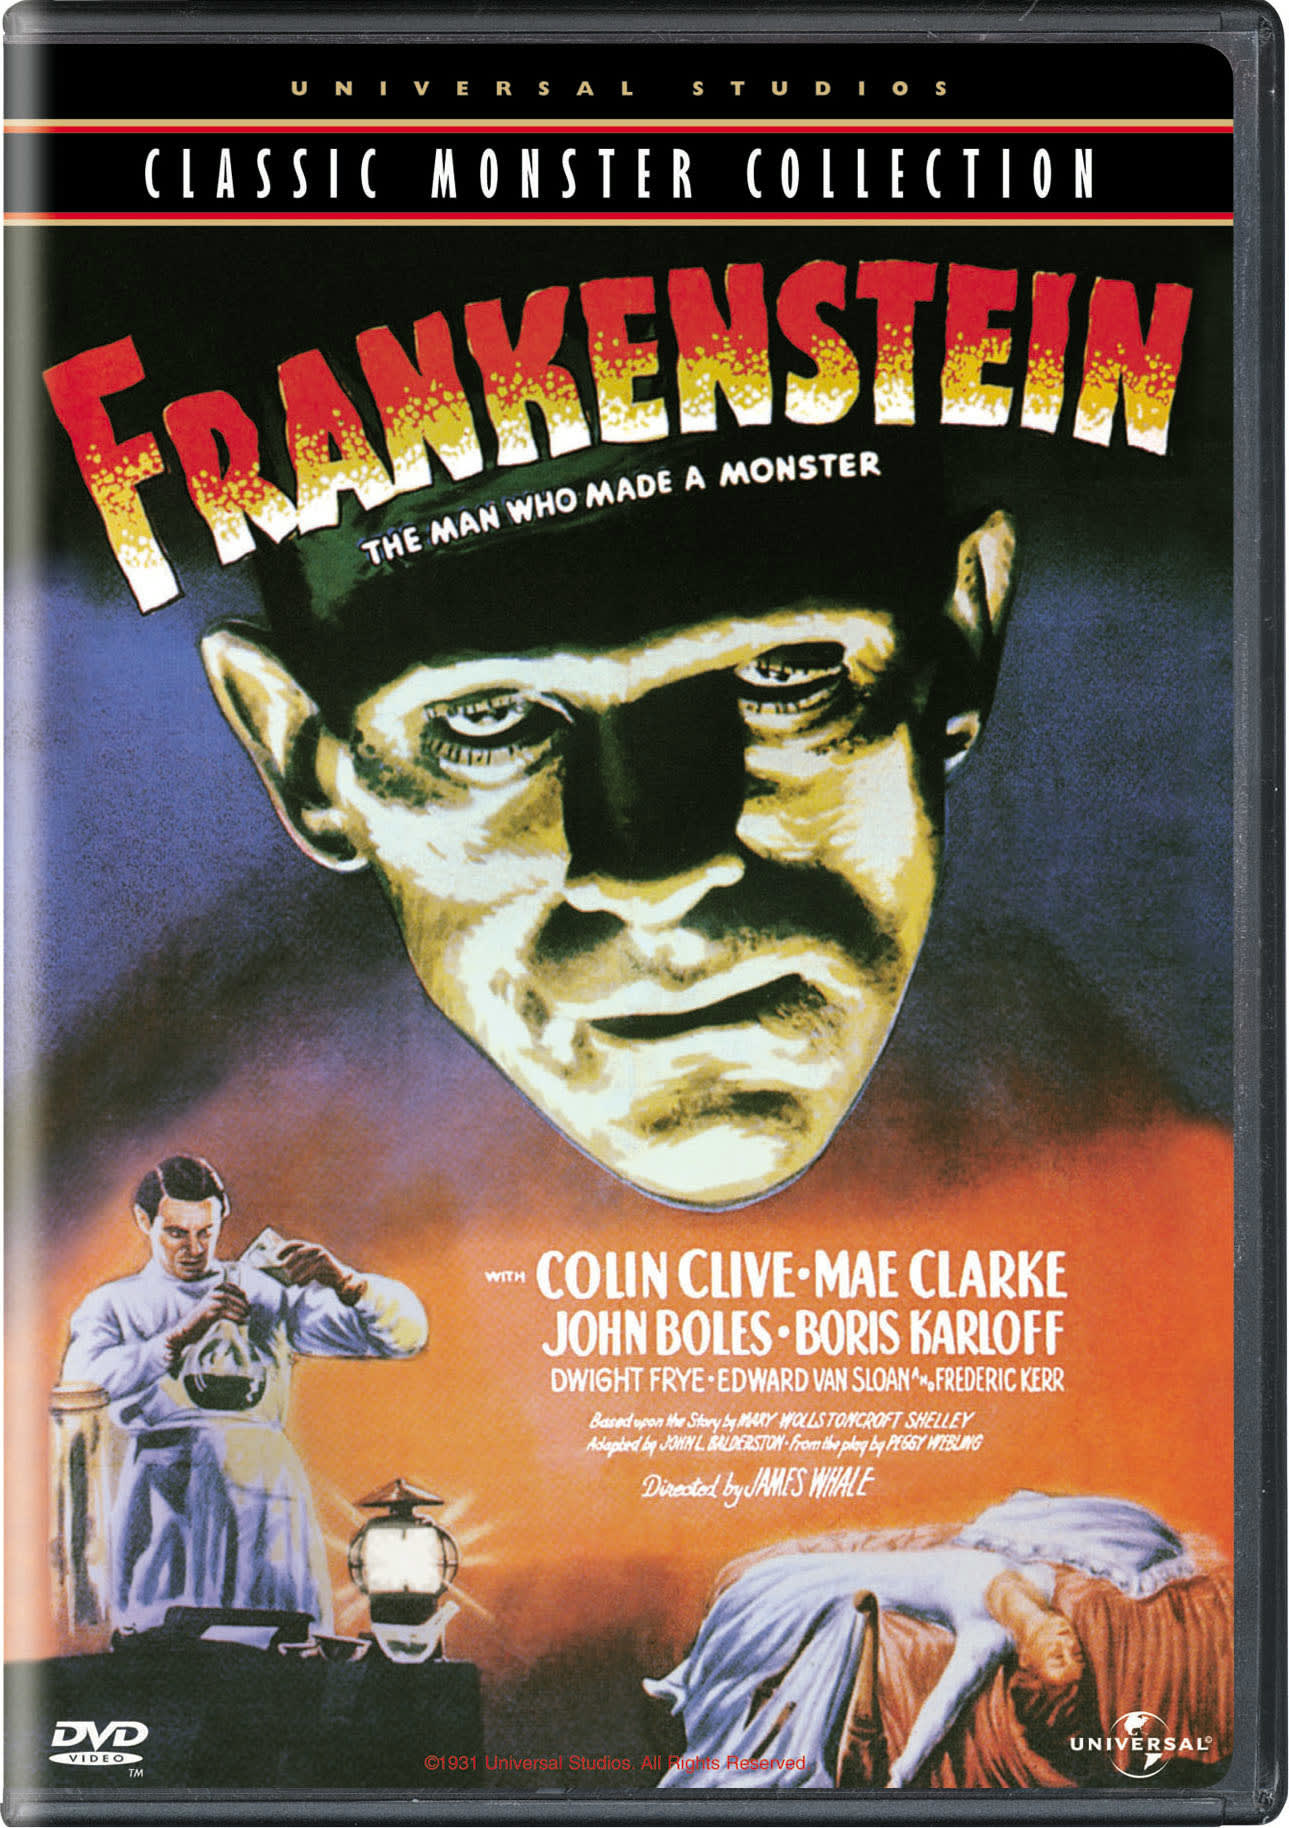 Frankenstein (Universal Studios Classic Monster Collection) [DVD]